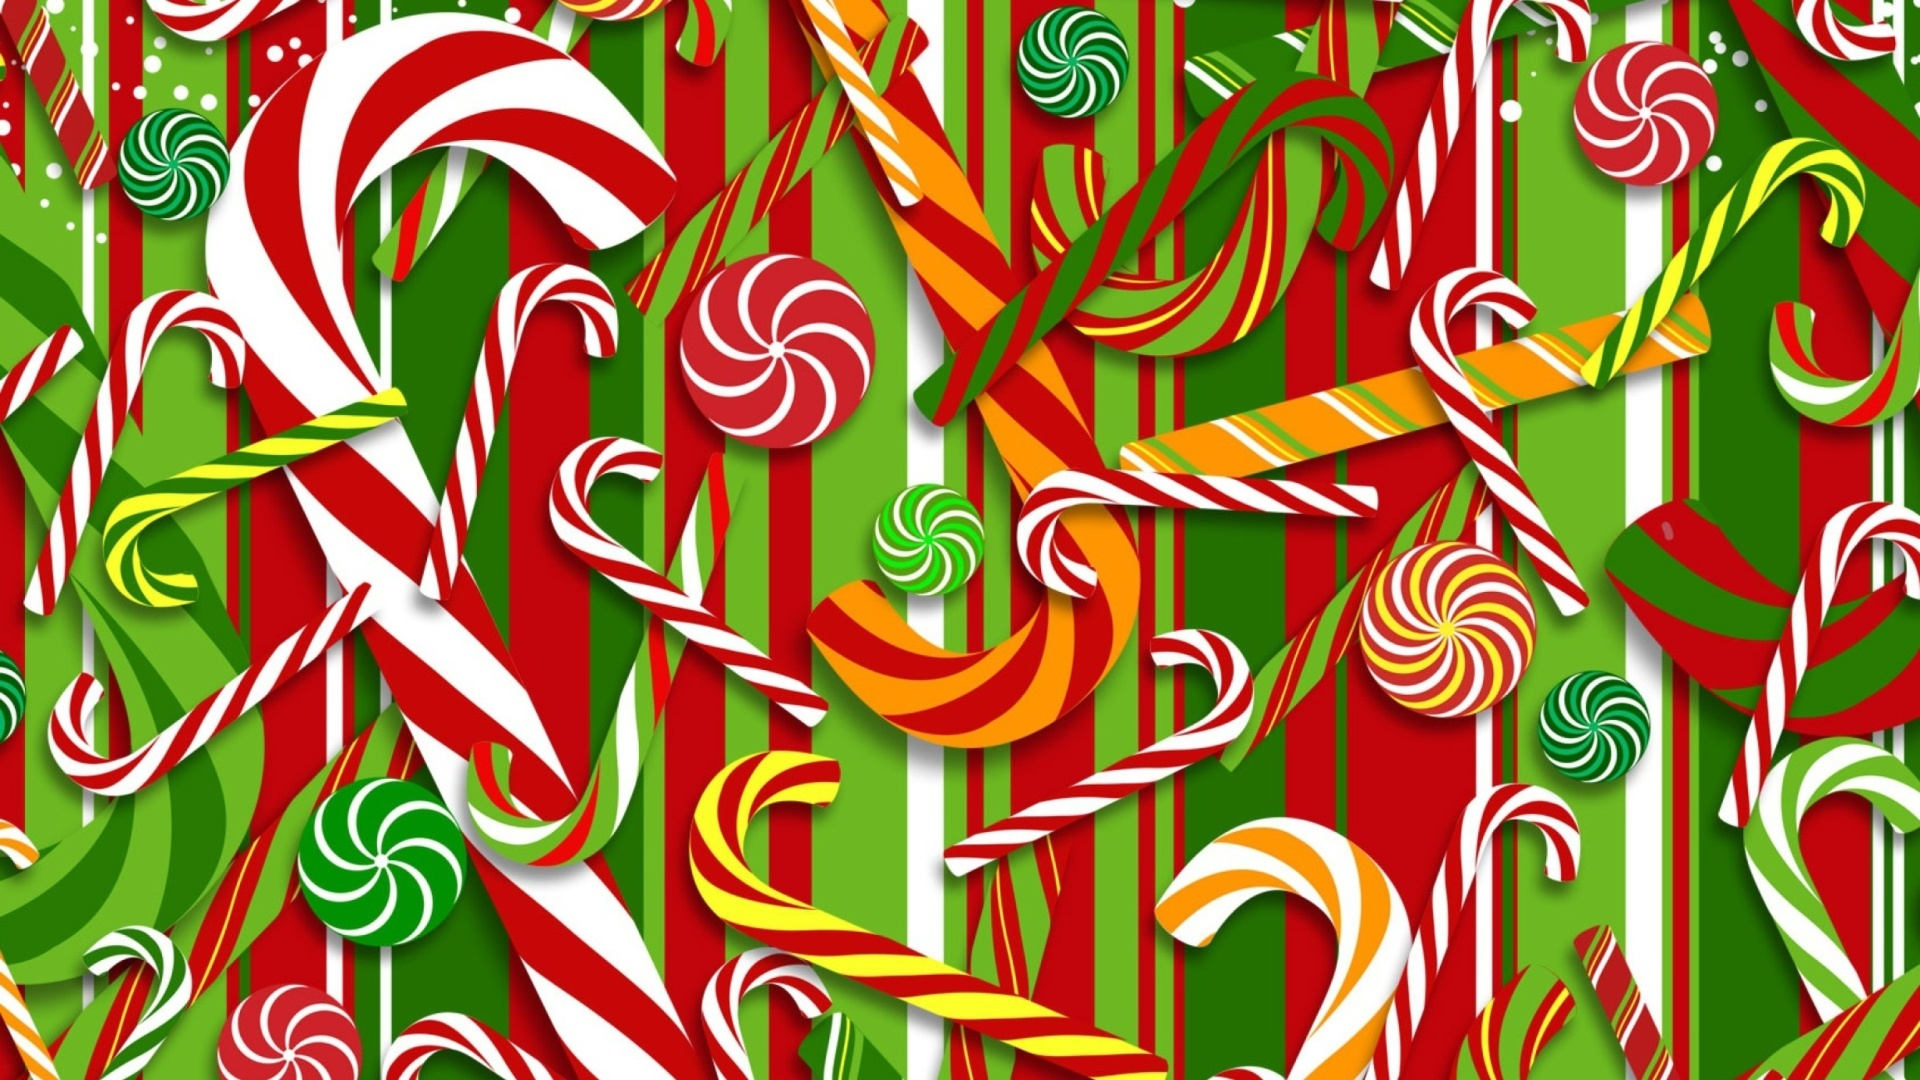 Candy Cane HD Wallpaper